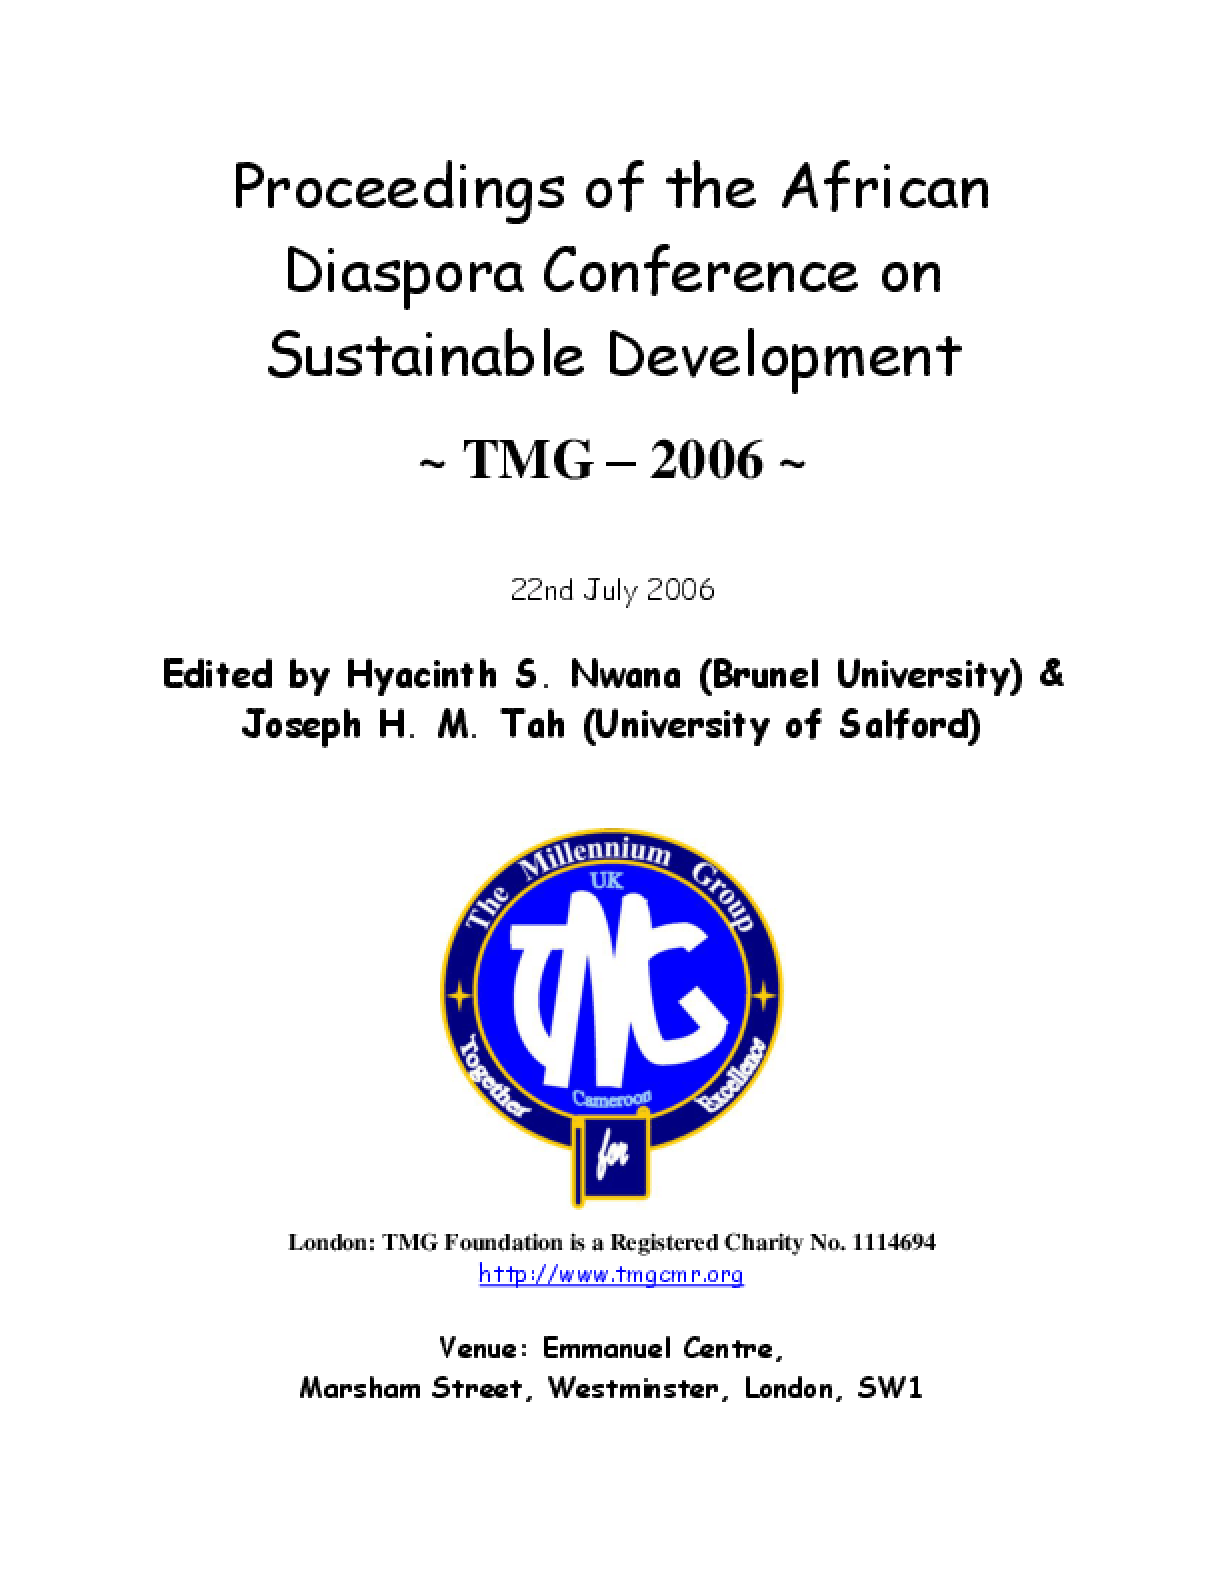 Proceedings of the African Diaspora Conference on Sustainable Development